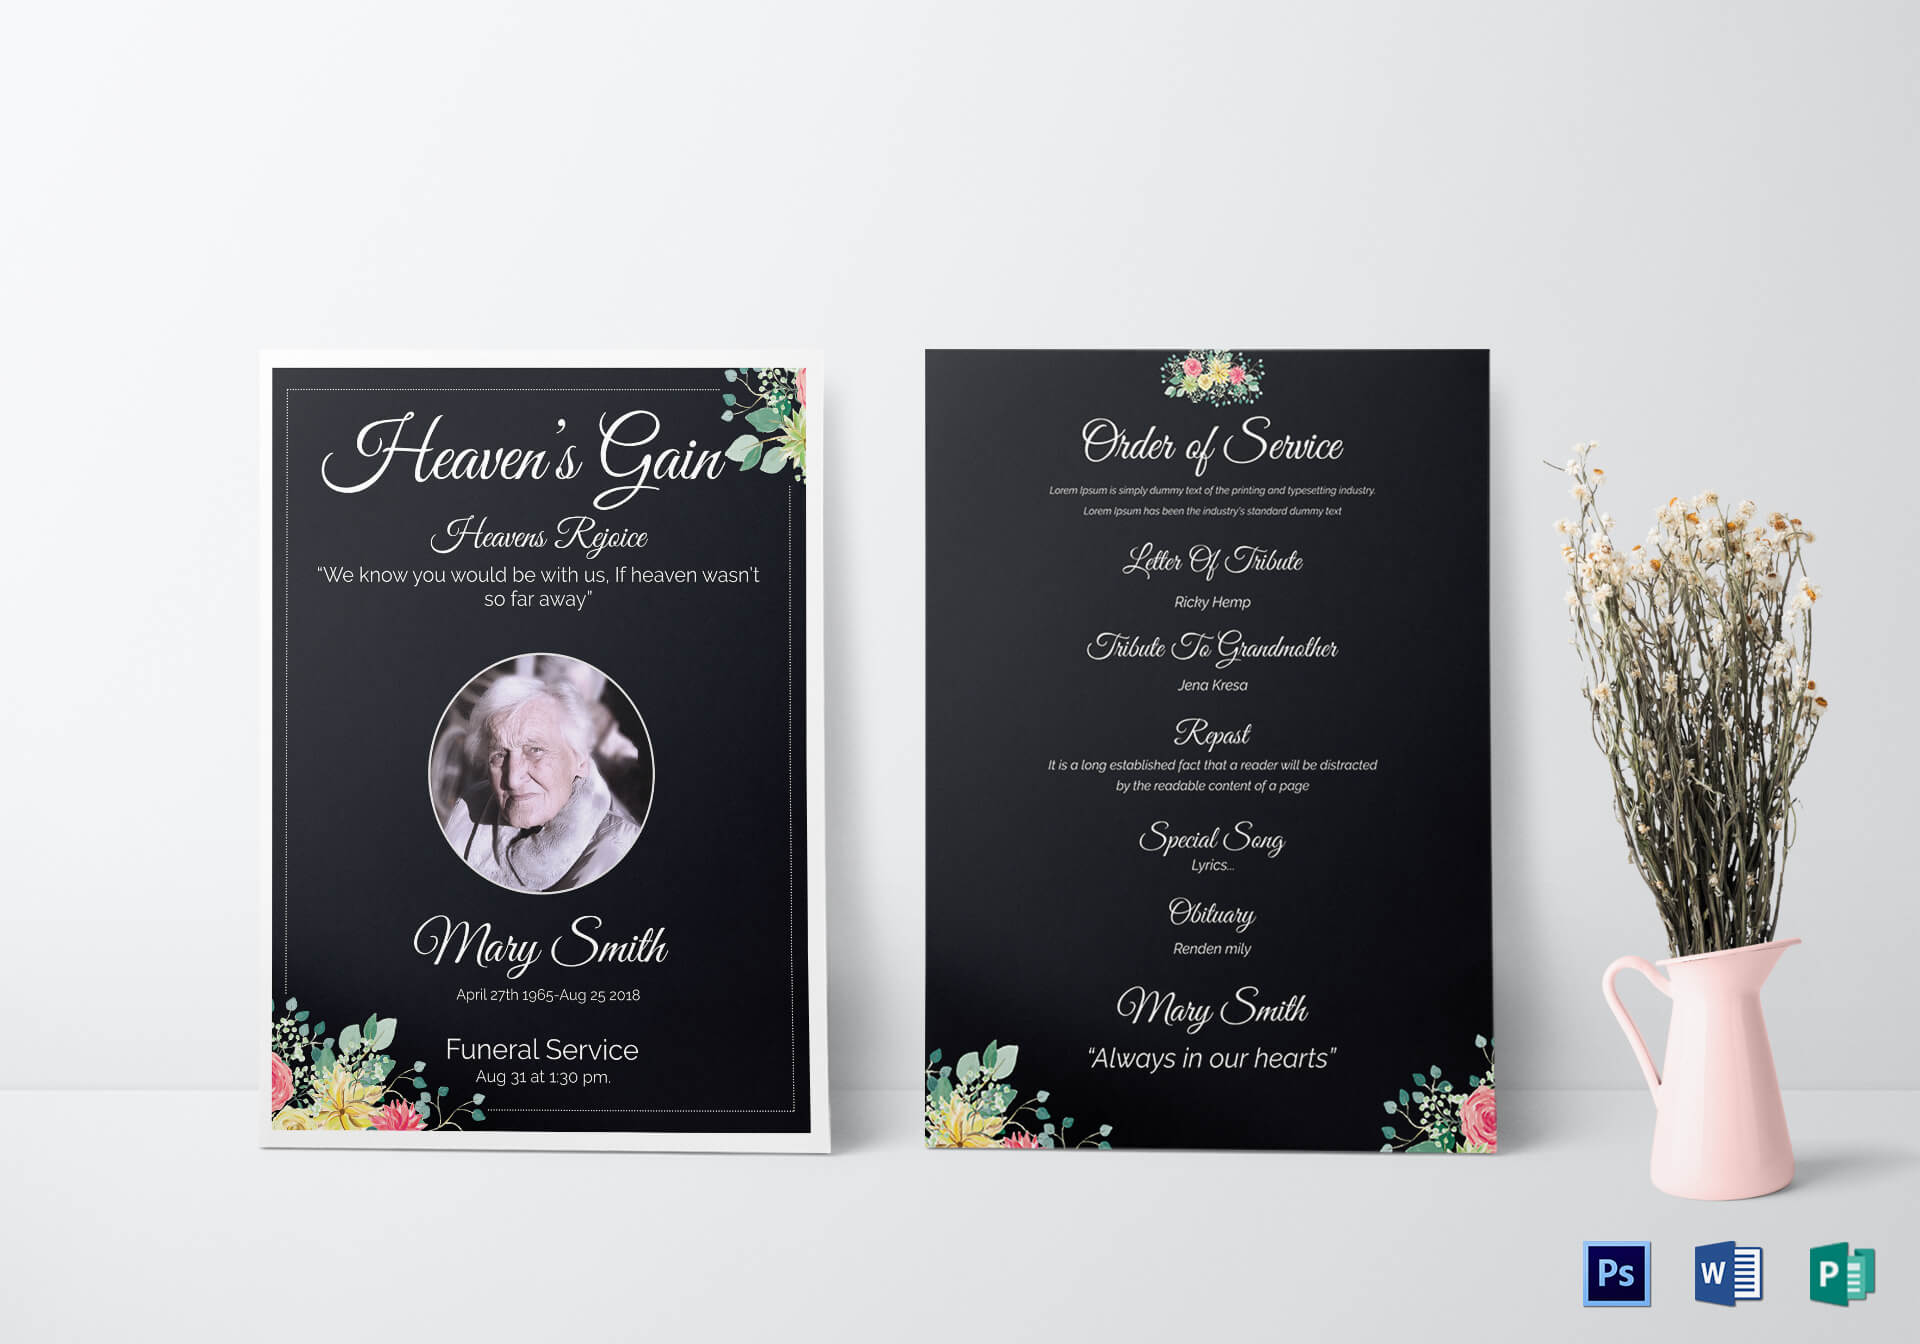 Eulogy Funeral Invitation Card Template pertaining to Funeral Invitation Card Template